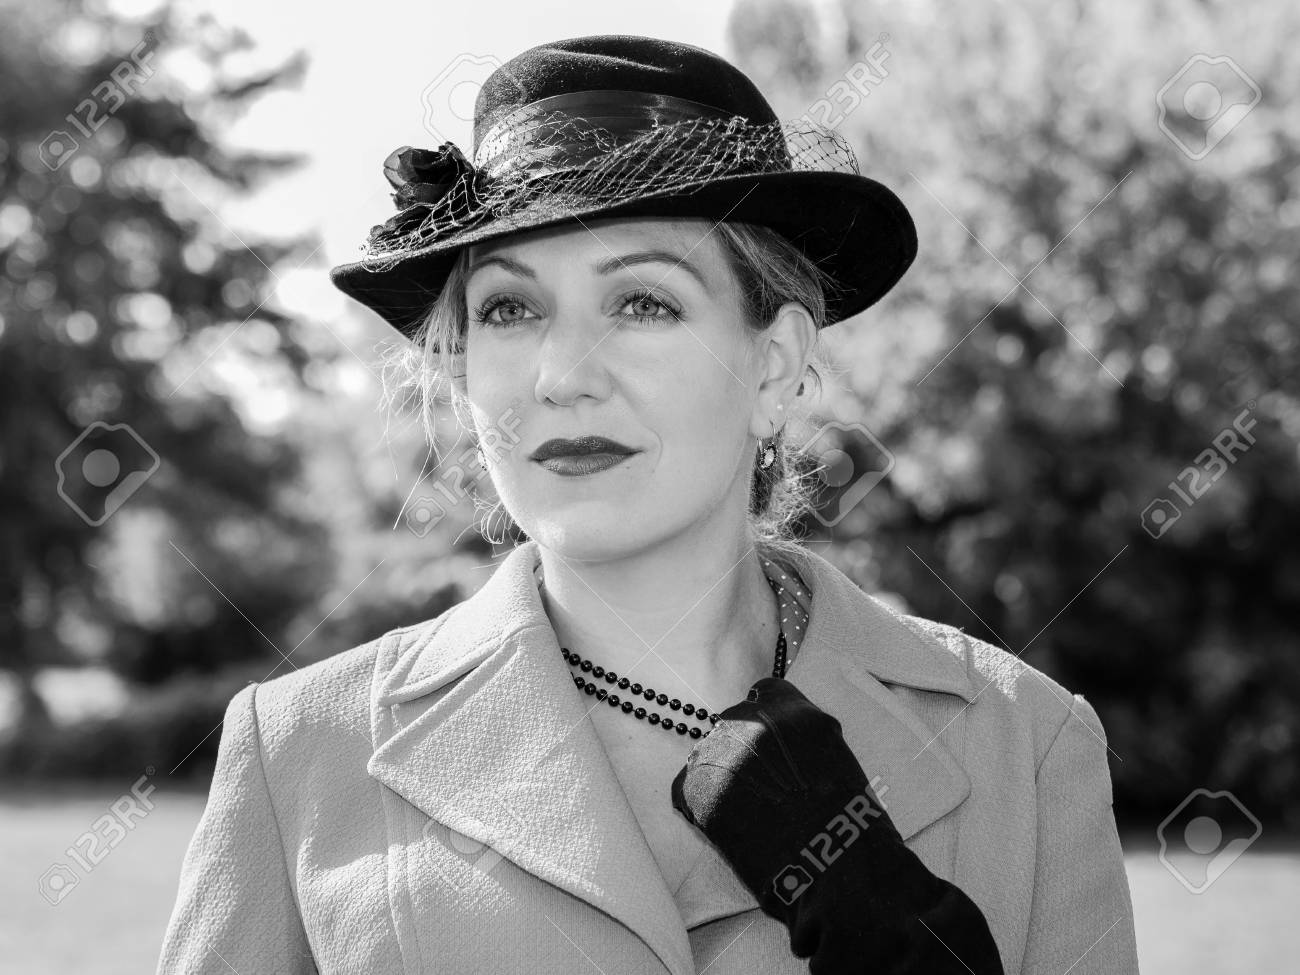 Stock photo vintage black and white portrait of a woman with a suit and a black hat looking dreamily